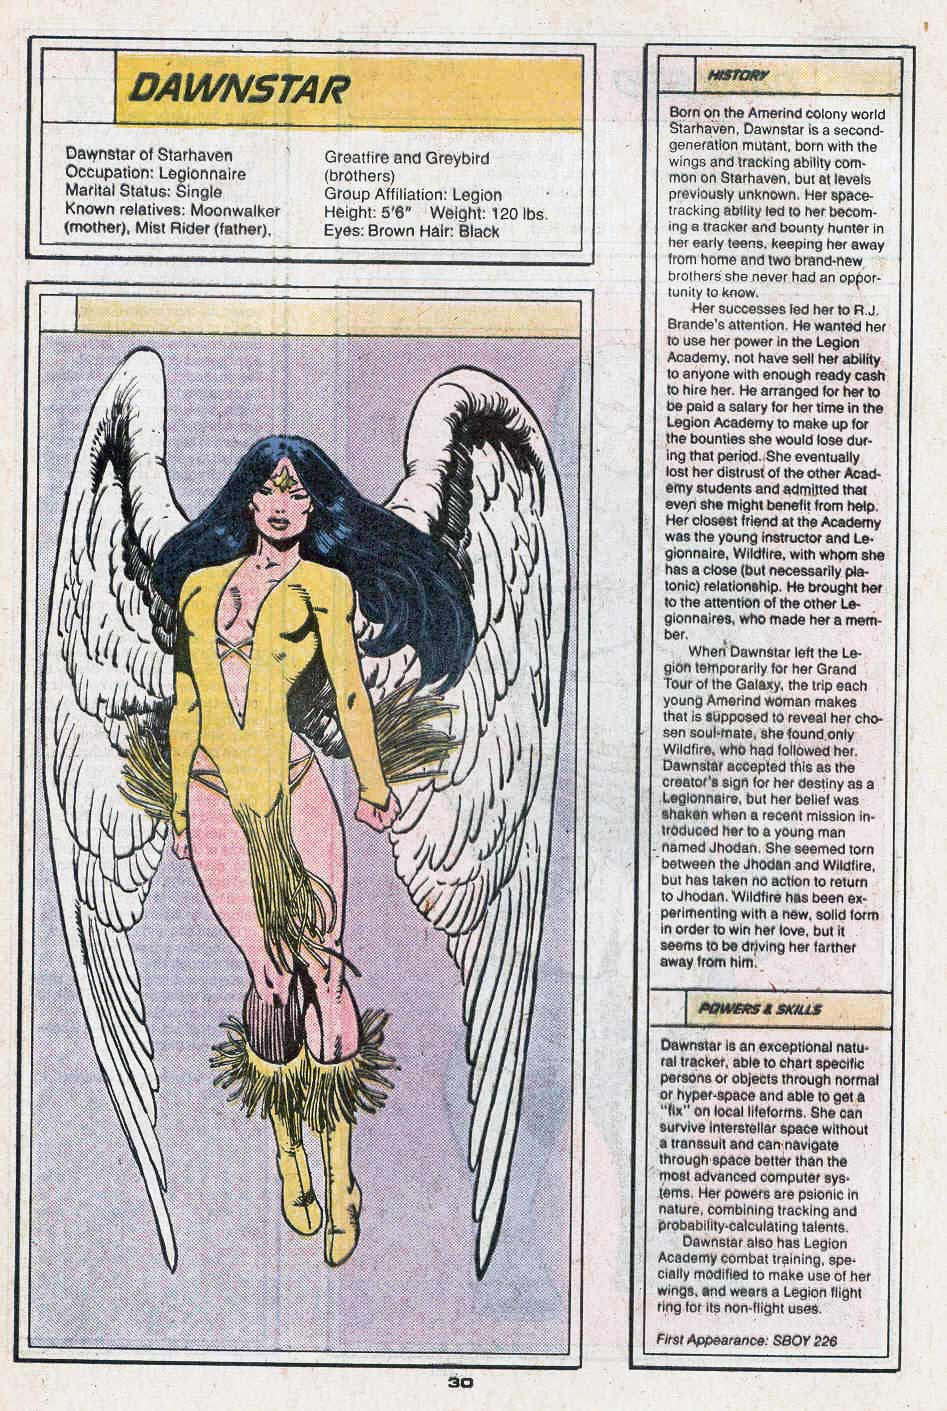 Dawnstar by Greg LaRocque and George Perez - Who's Who in the Legion of Super-Heroes #1